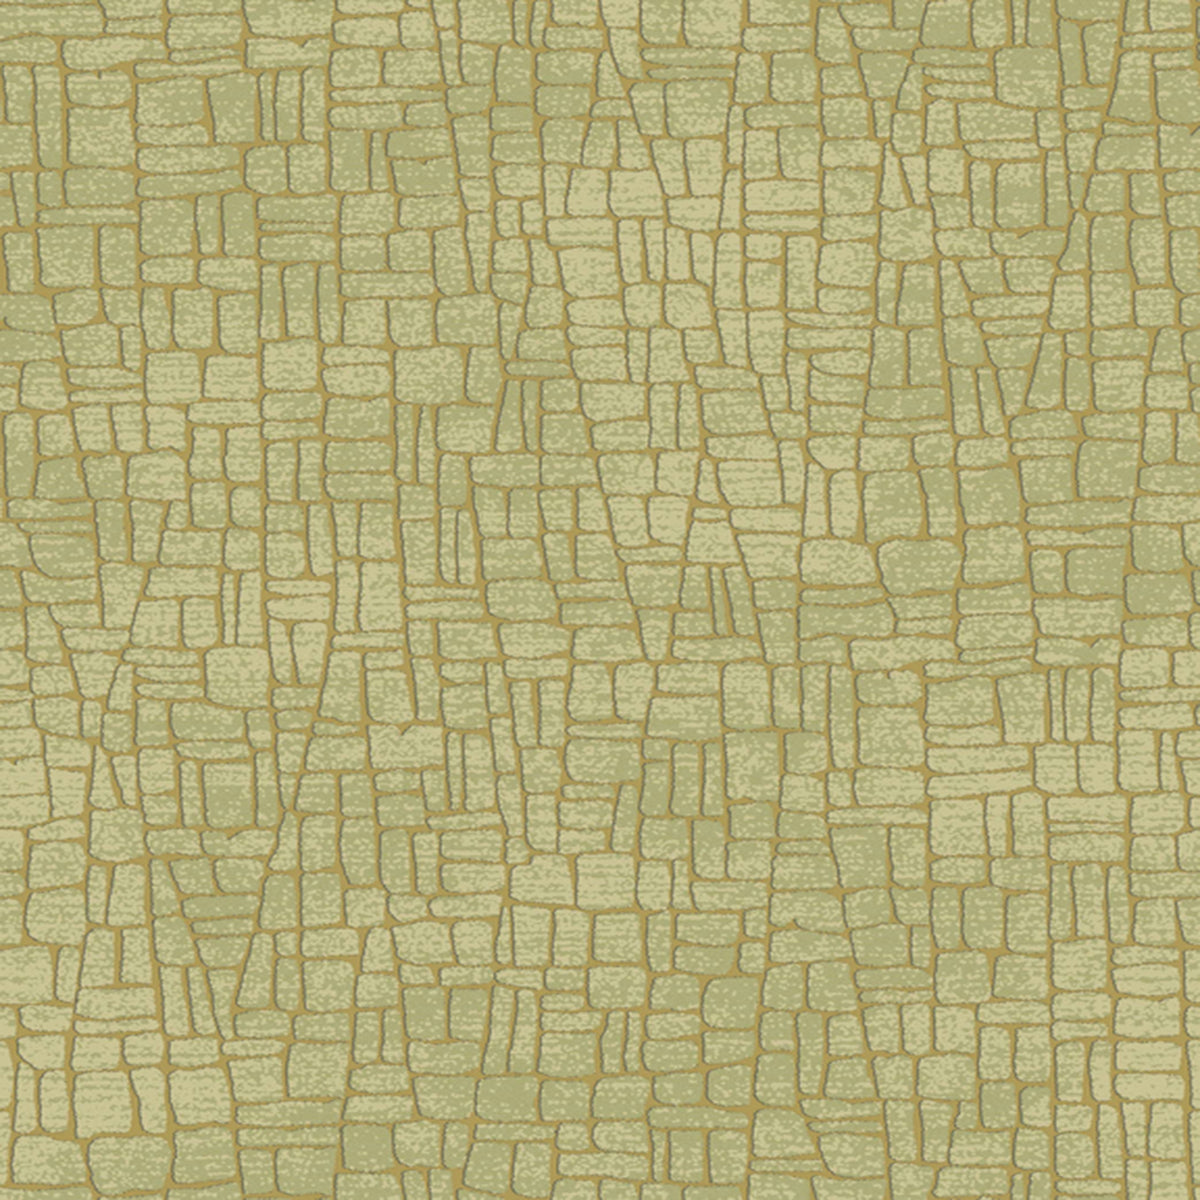 Mixed Metals Butler Stone Wallpaper in Taupe